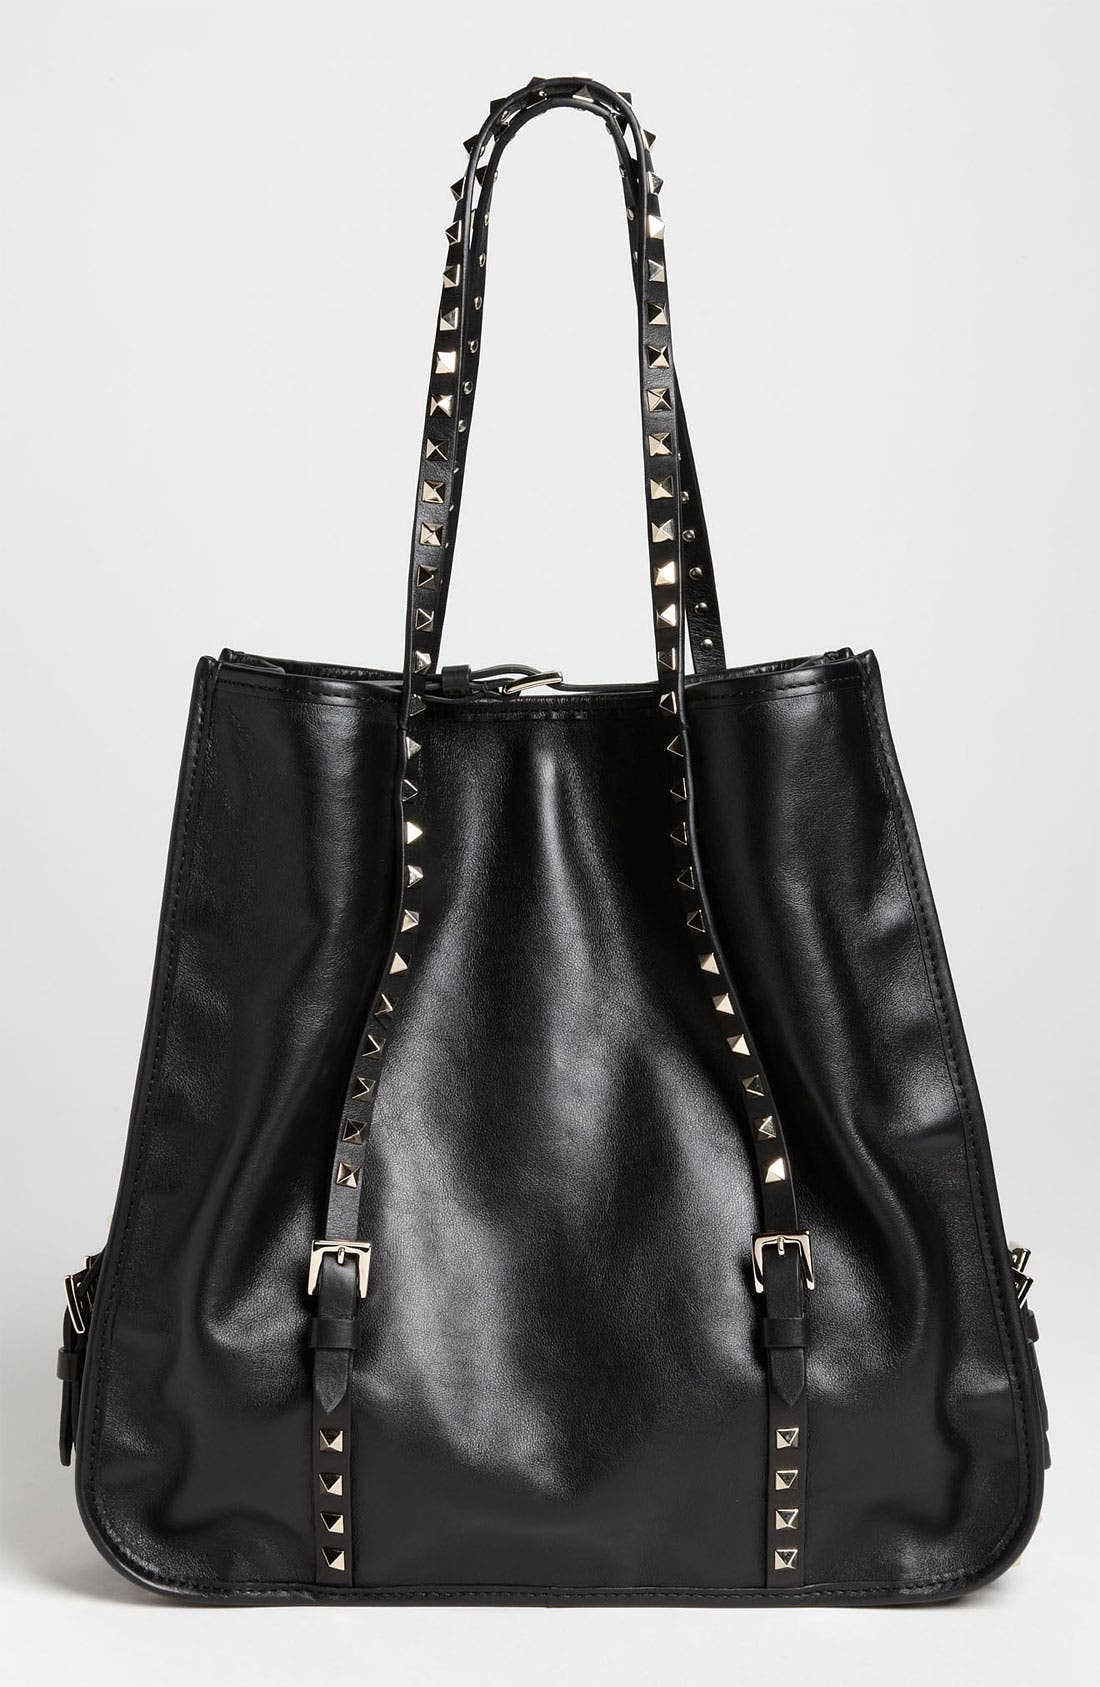 Main Image - Valentino 'Rockstud' Leather Shopper Tote